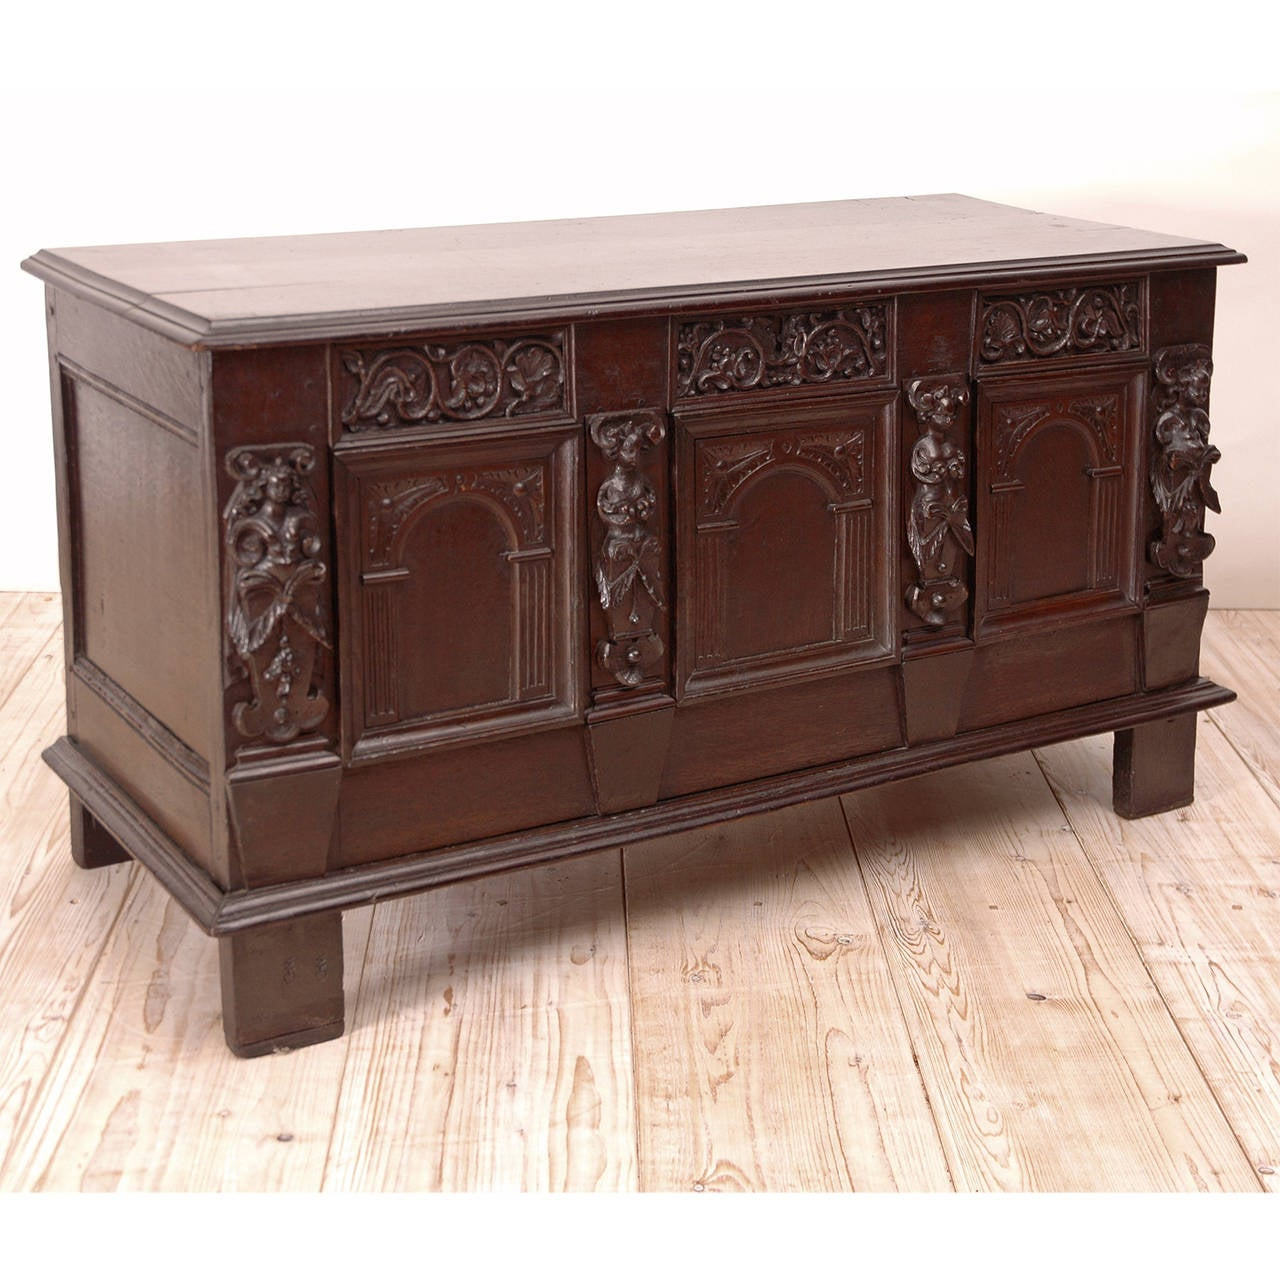 Composed of antique architectural elements which include carved female figures, arabesques and arched panels, this hinged chest made of oak has a dark and rich patina. Some of the elements appear to be from the 1700s or earlier. Lovely for use at